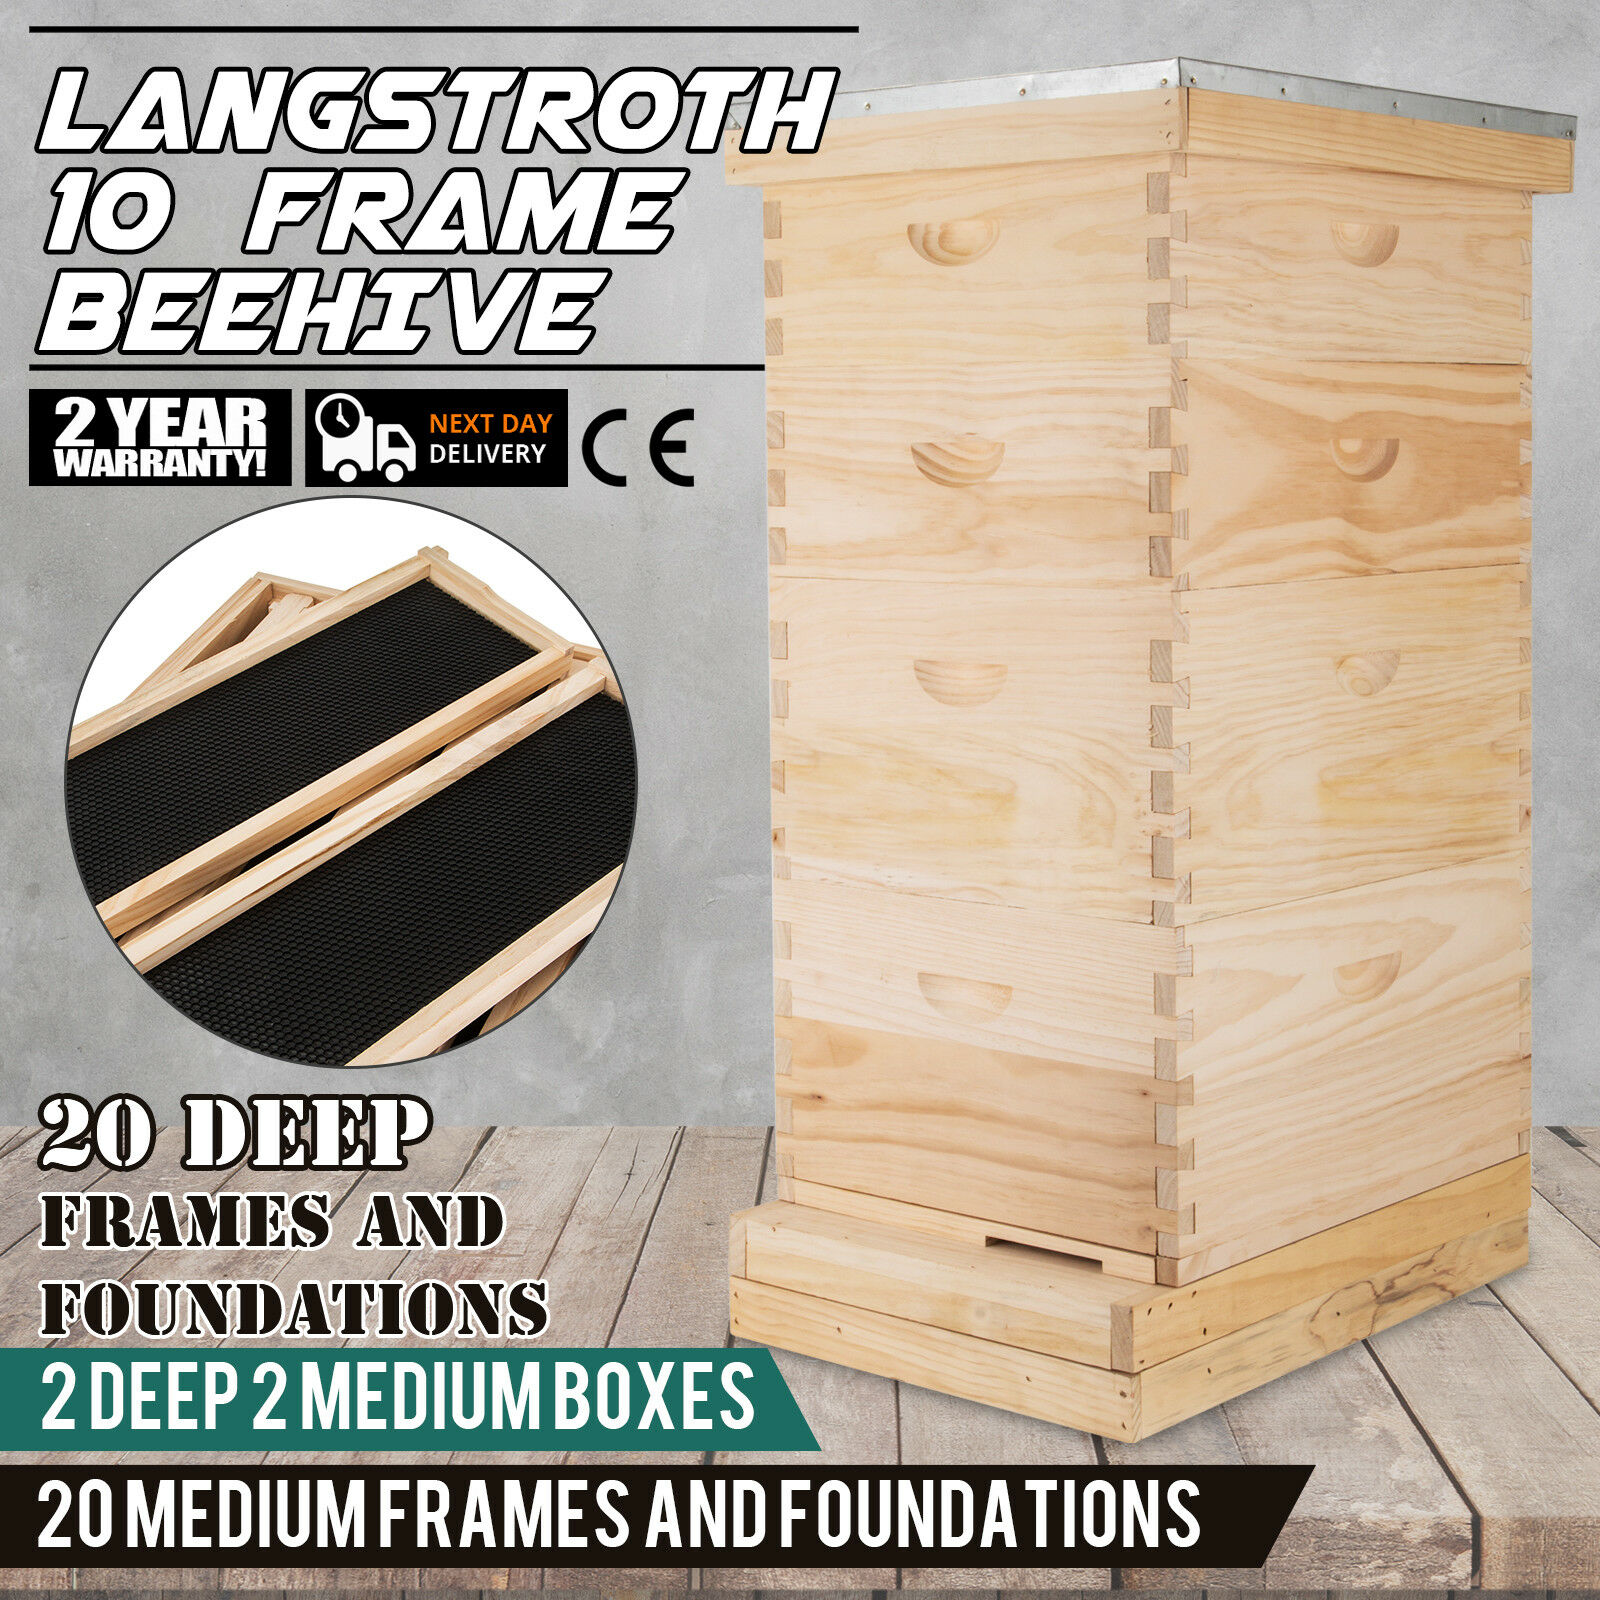 Langstroth Bee Hive 10 Frame 2 Deep 2 Medium Beekeeping Equipment Solid construction (Includes all Frames & Foundations)